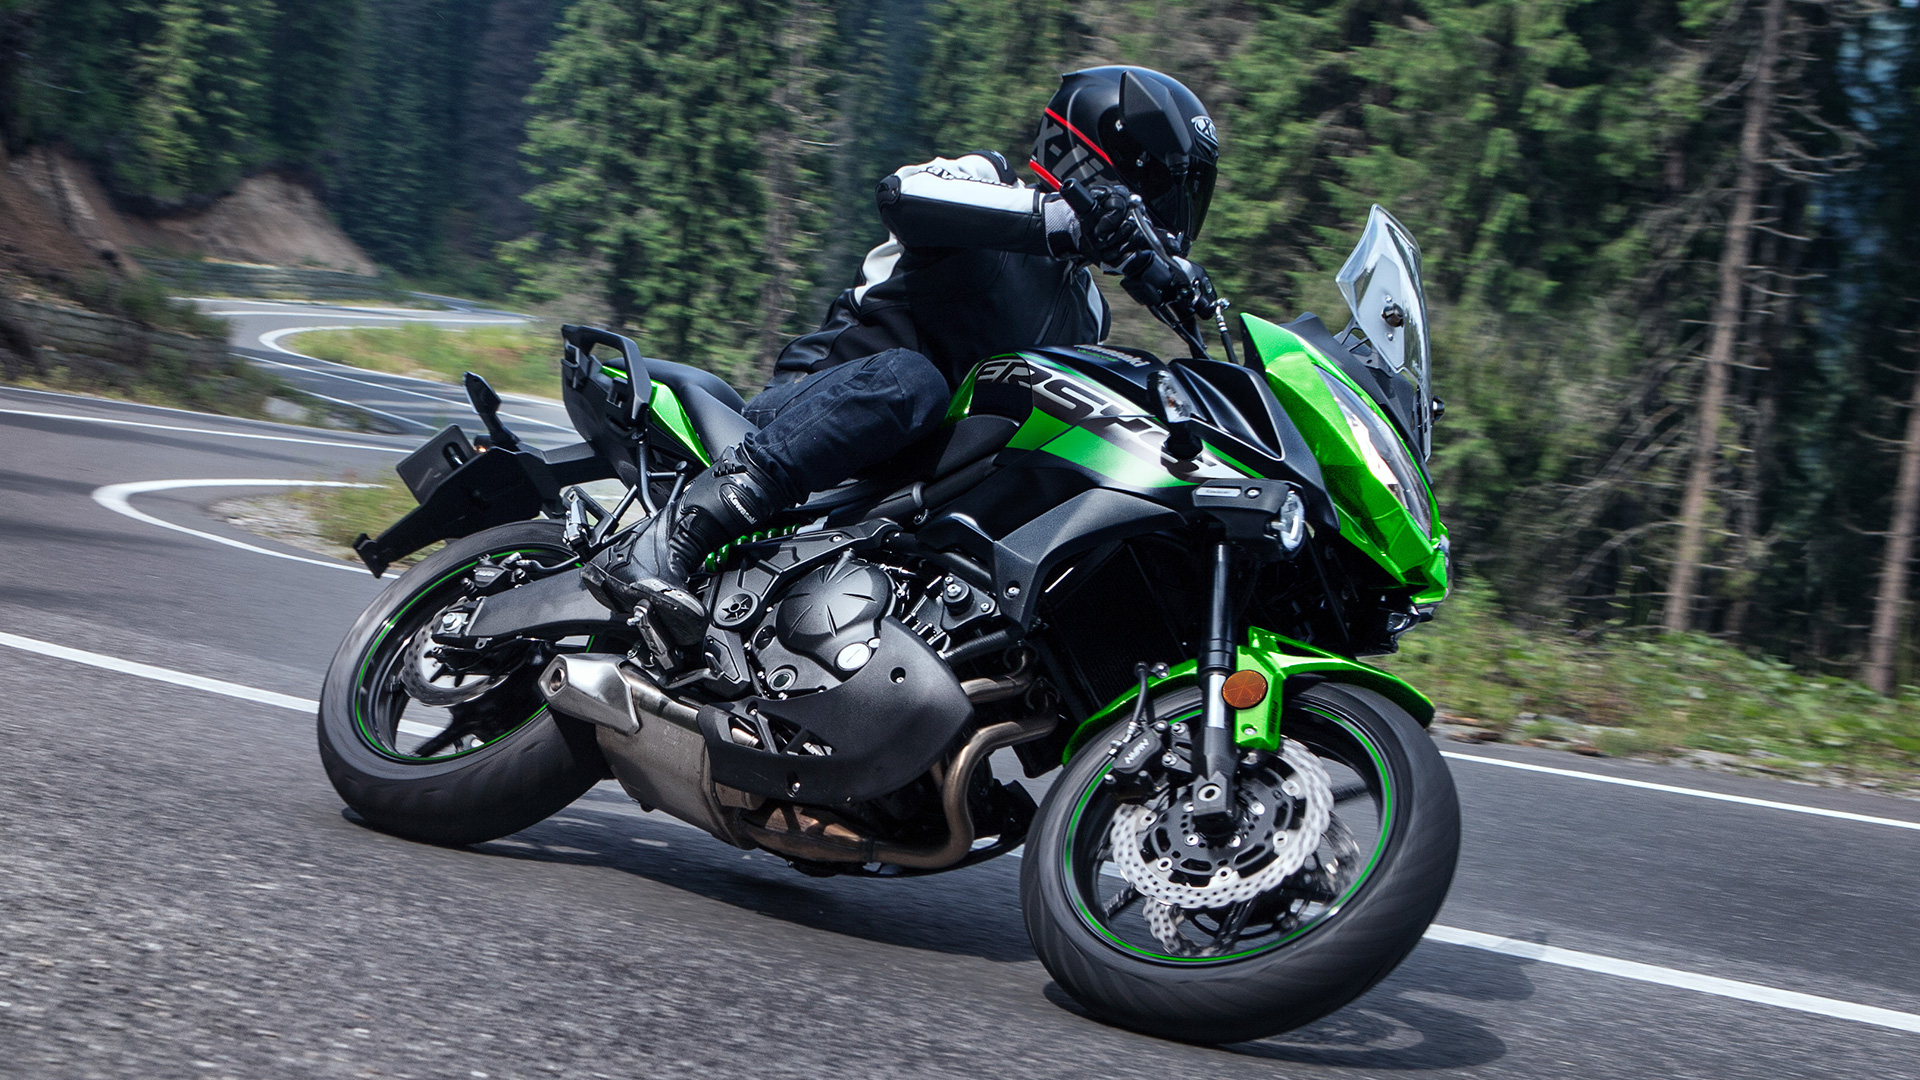 Kawasaki Versys 650 2017 >> Kawasaki Versys 650 2018 - Price, Mileage, Reviews, Specification, Gallery - Overdrive